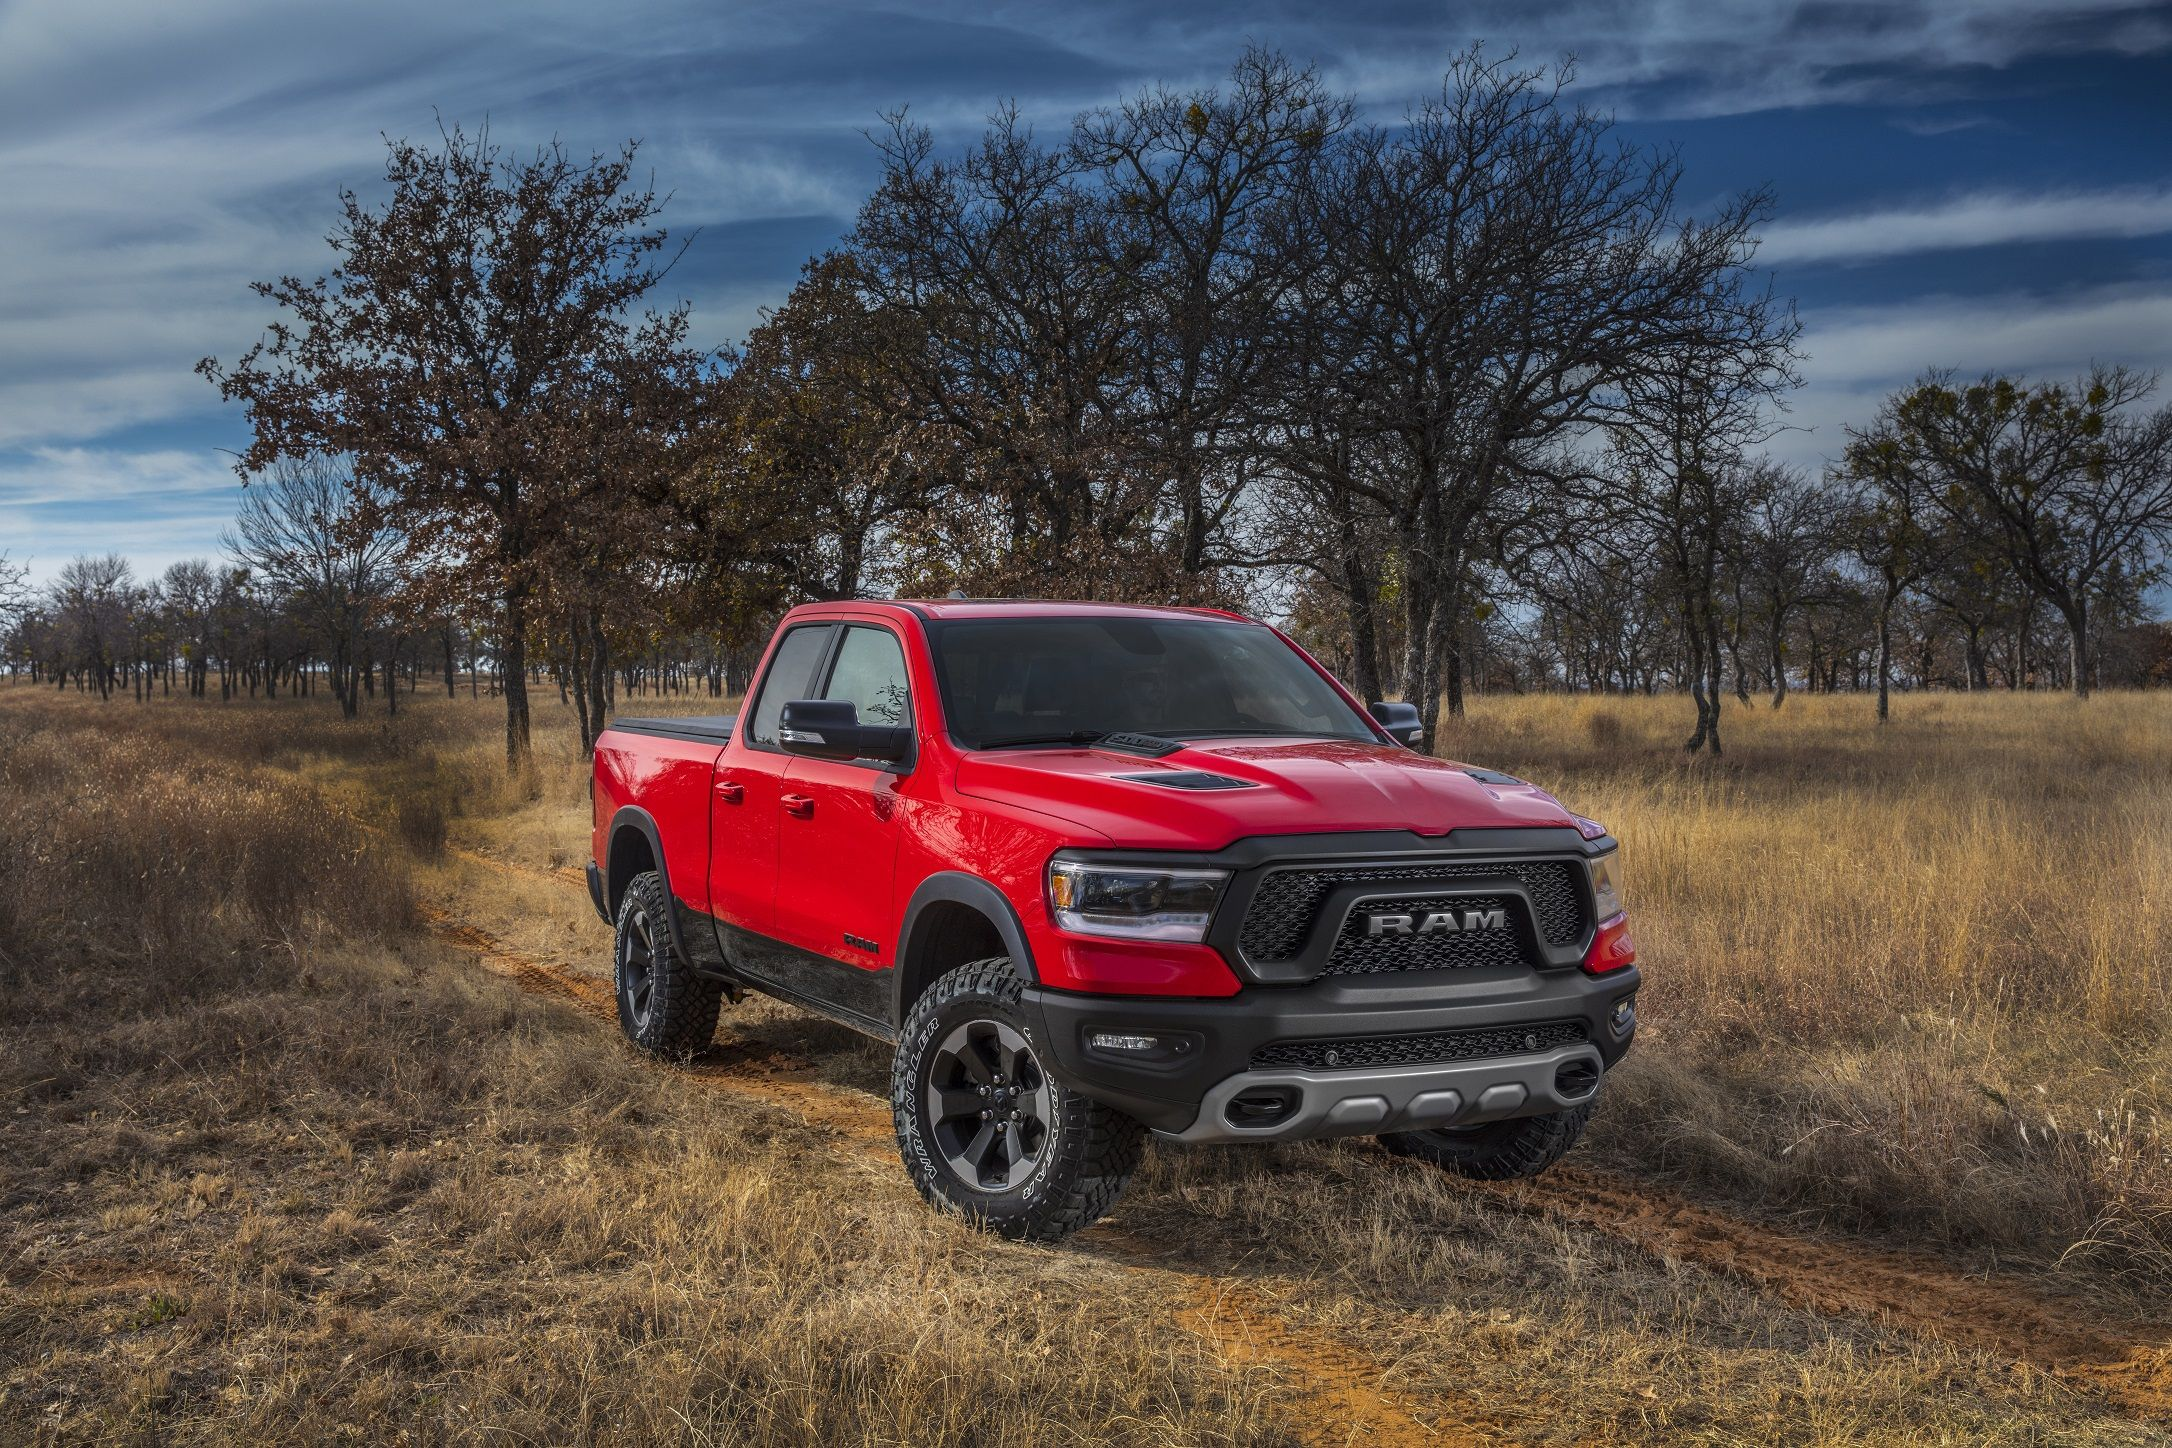 2020 Ram 1500 Ecodiesel Is The Cheapest Light Duty Diesel You Can Buy